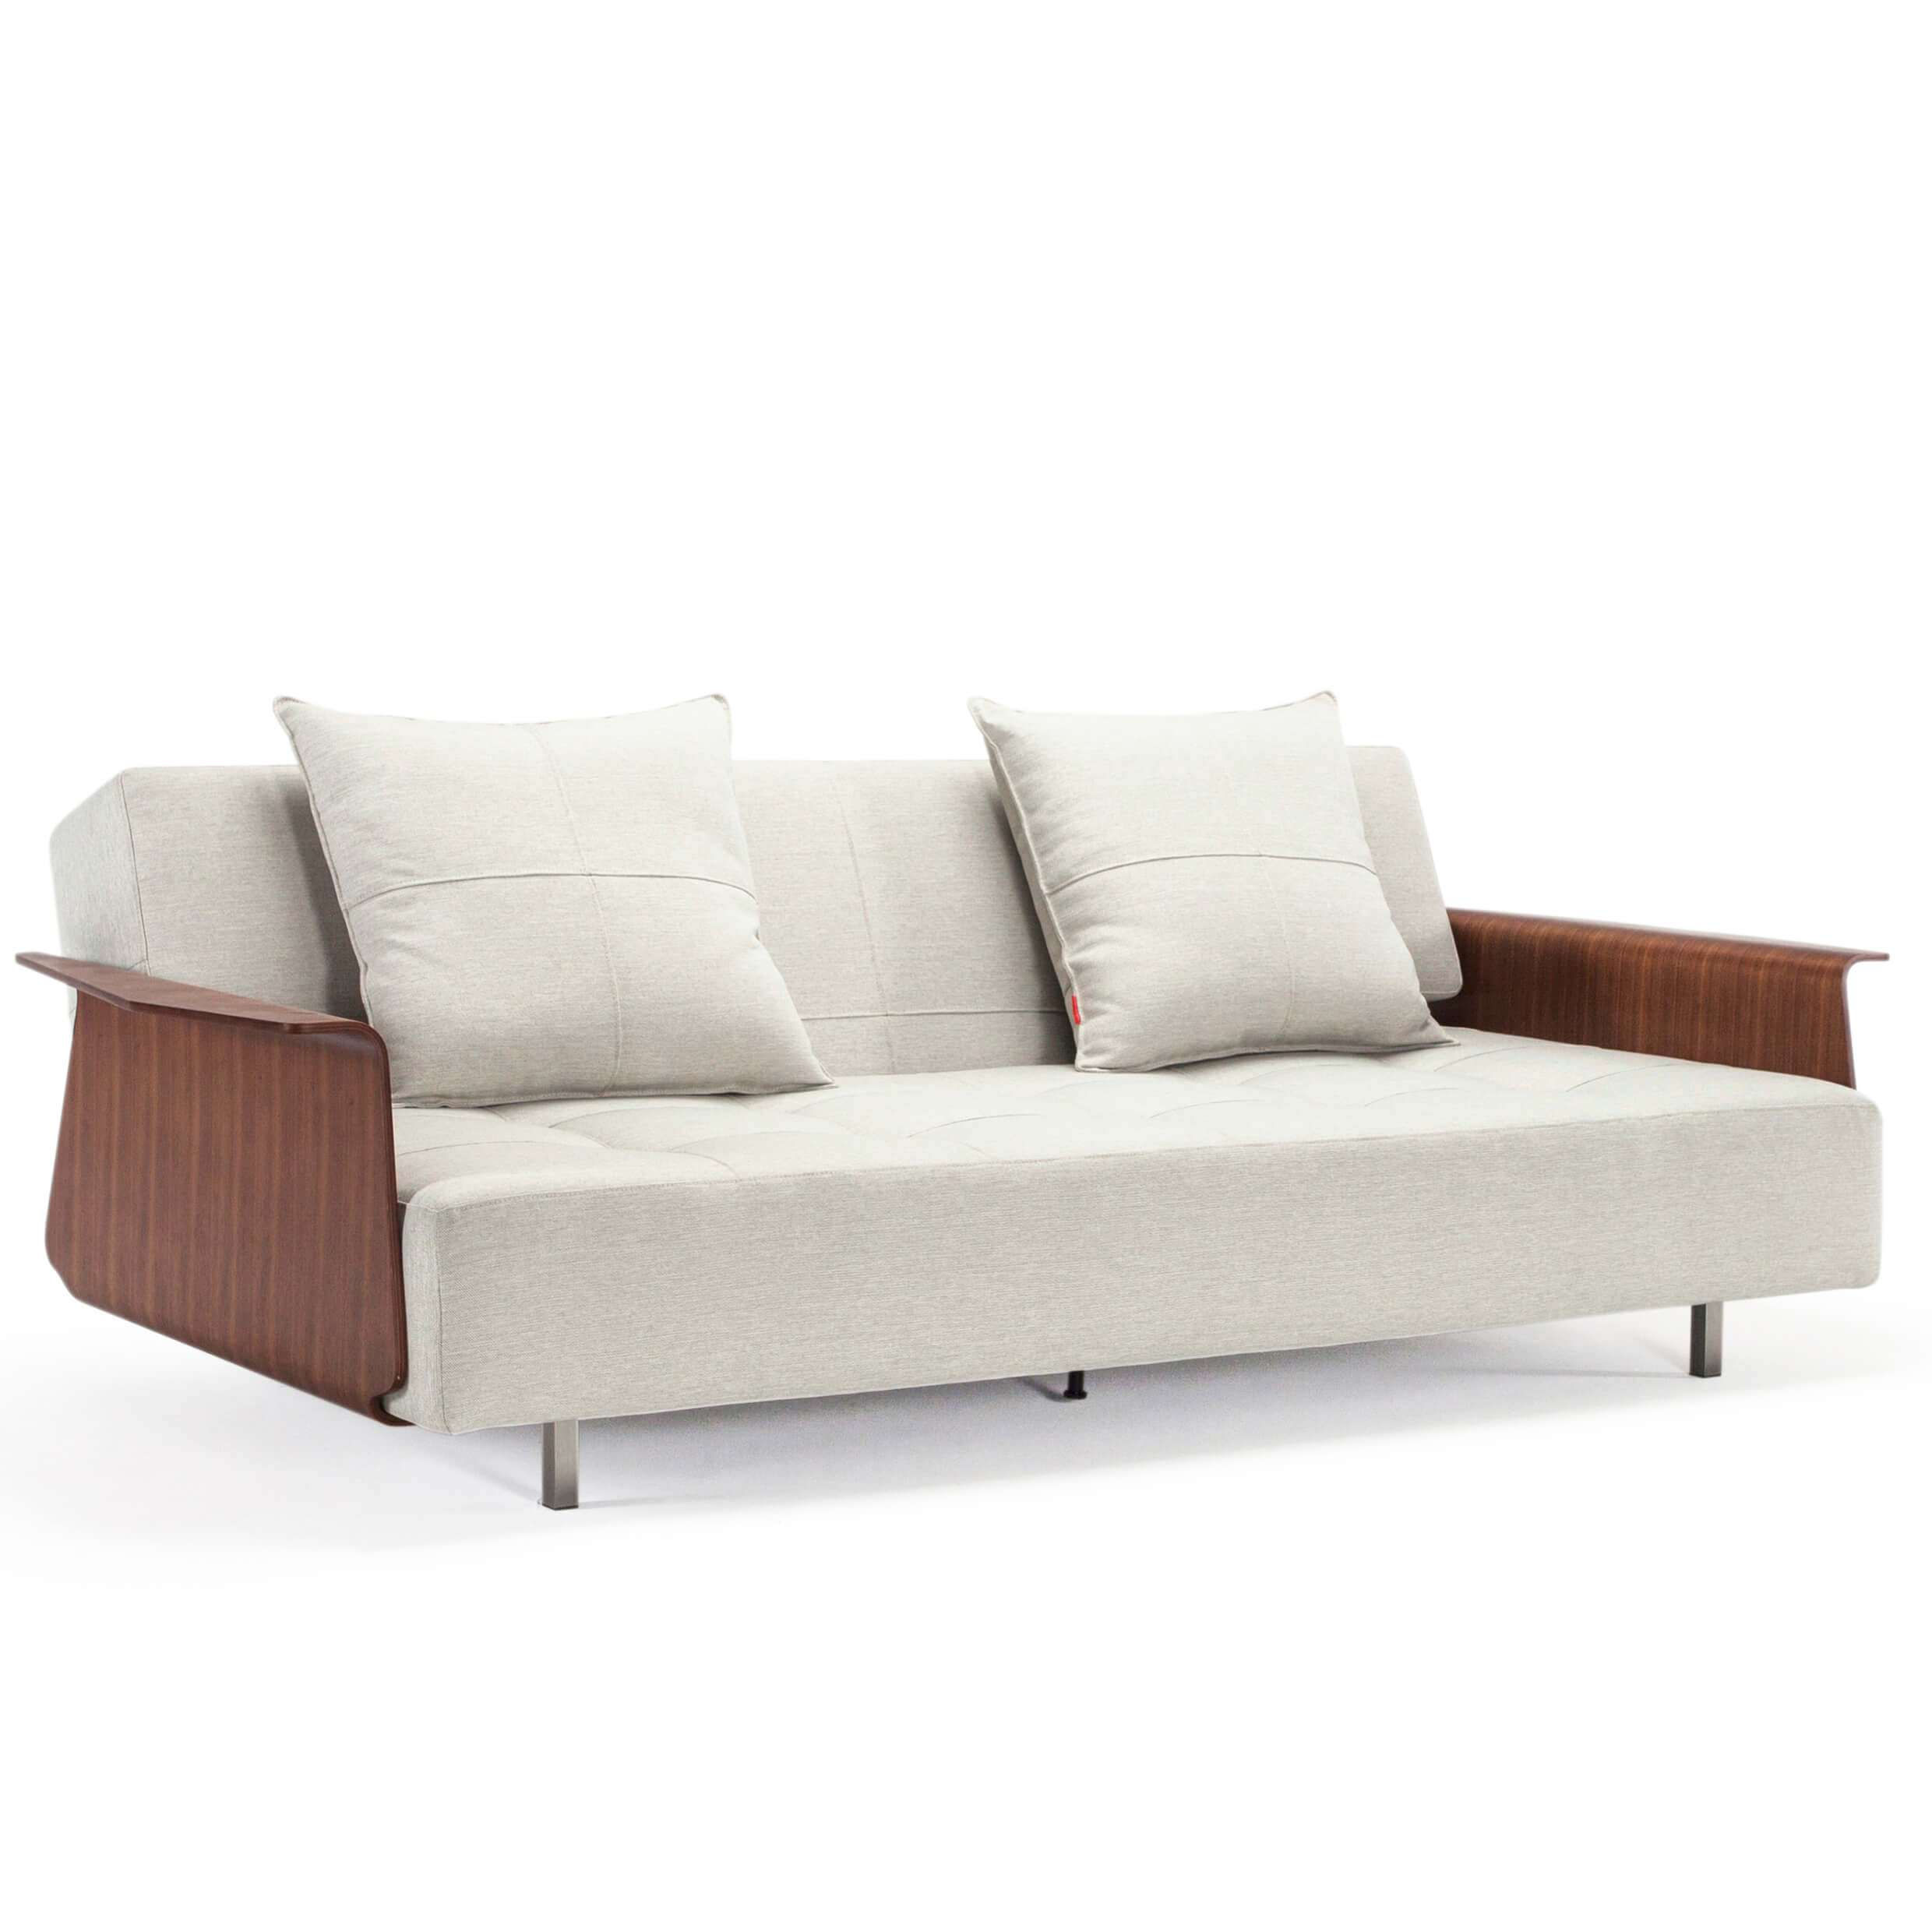 Convertible Sofa Bed Luxury Sofa Beds